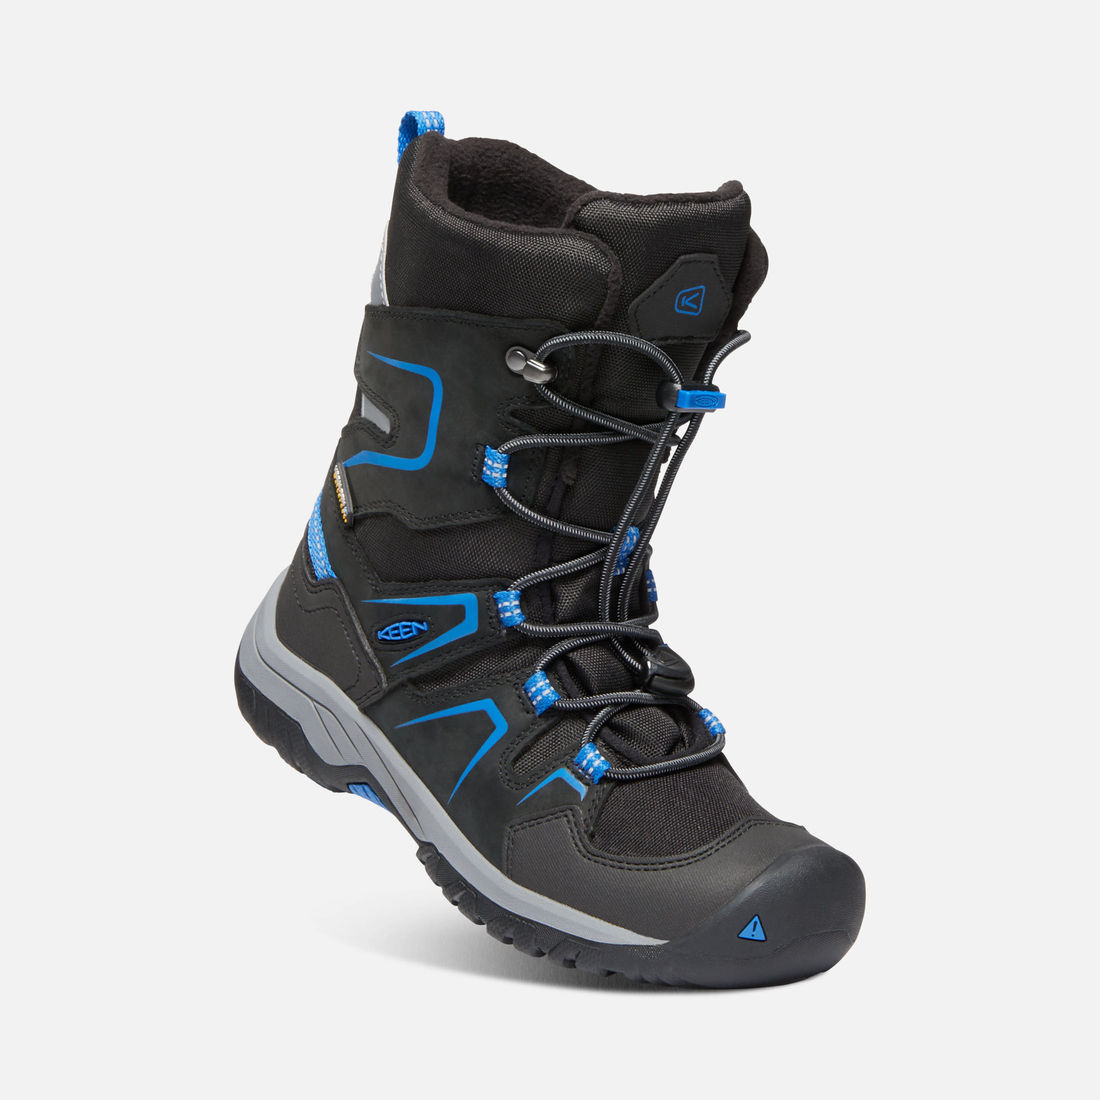 KEEN LEVO WATERPROOF WINTER BOOT černé vel.37